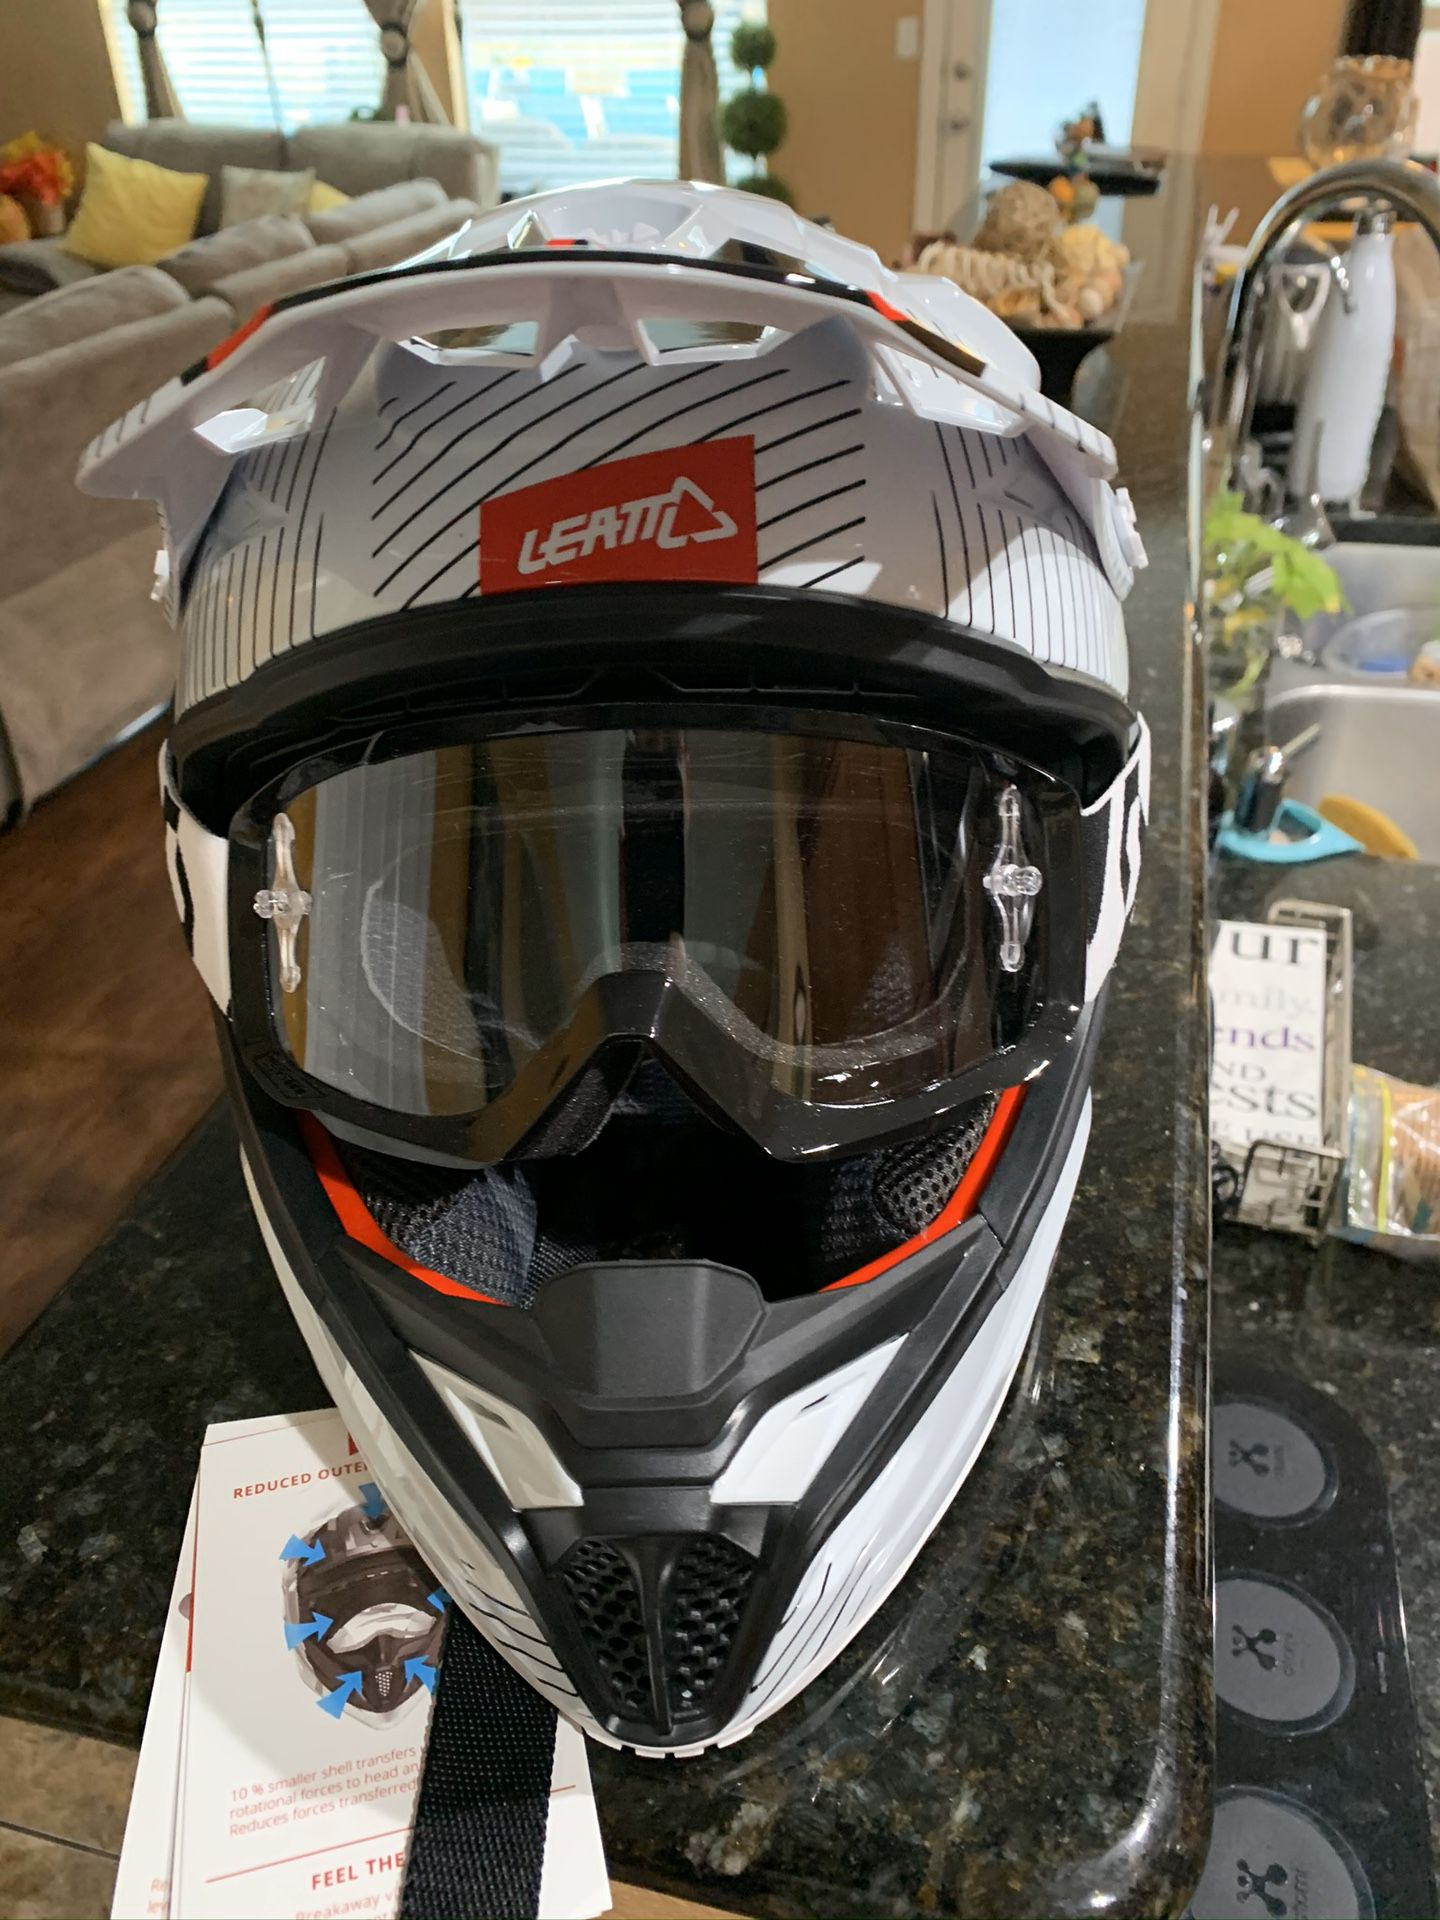 Leary gpx 4.5